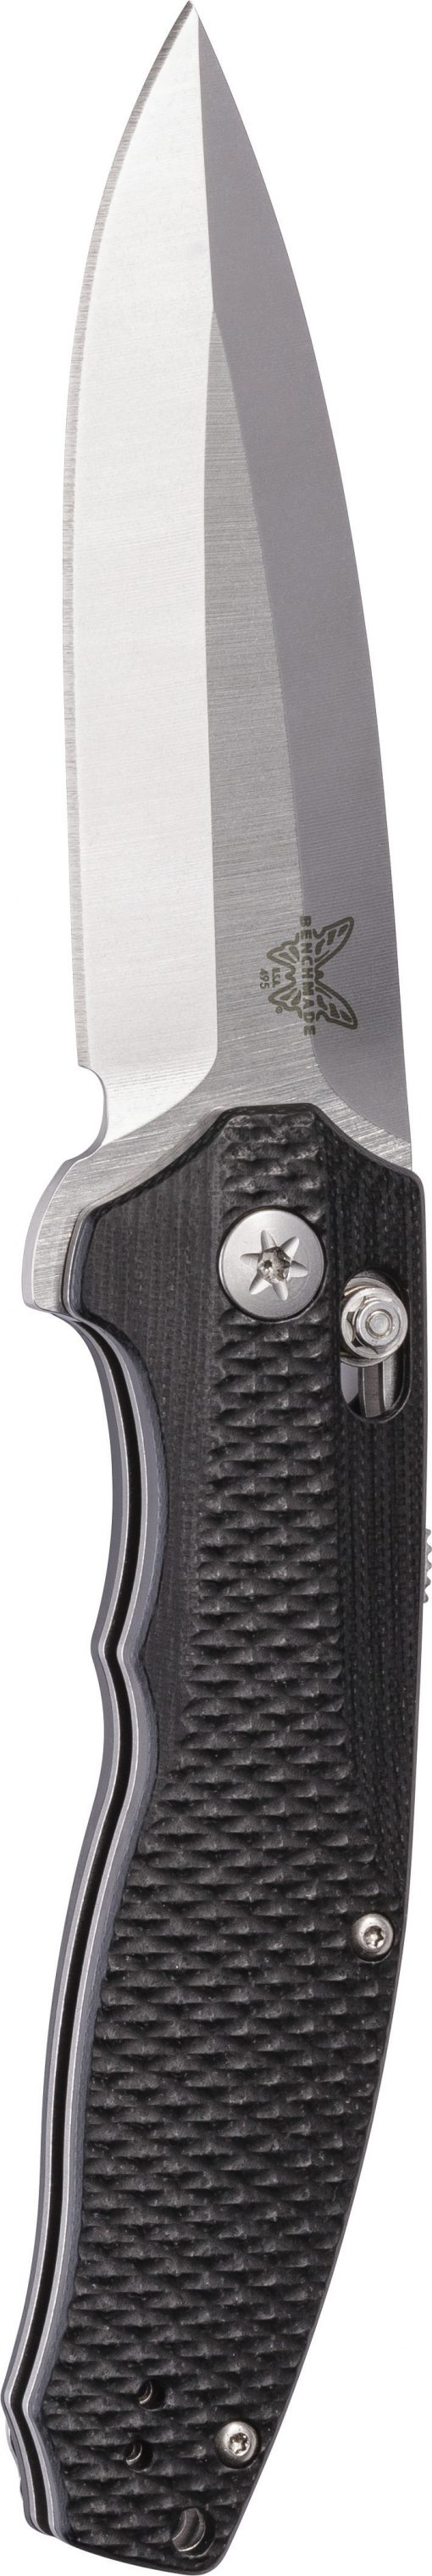 Benchmade Vector AXIS-Assist S30V Blade Black G-10 Handle Front Side Open